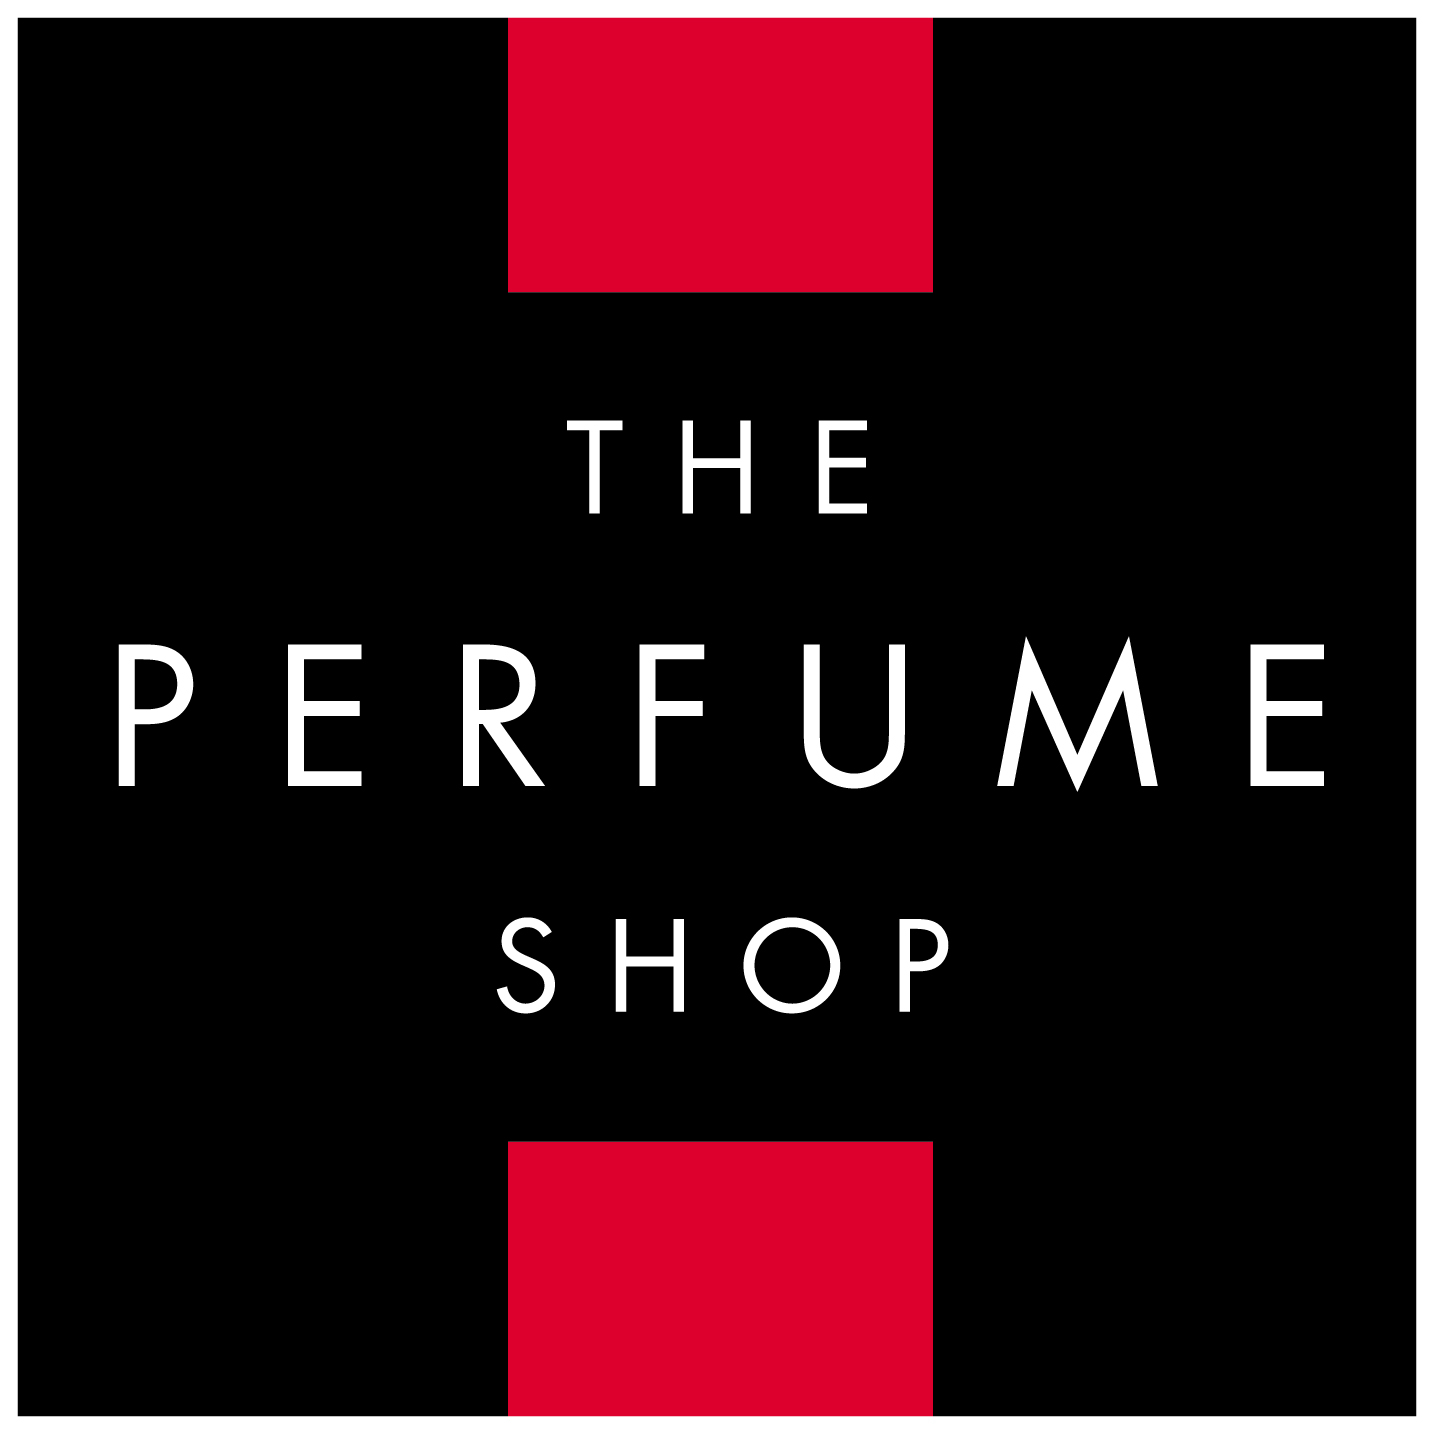 Shop Perfume At Discounts Up To 80% Off Department Store Prices. Browse 17, women's perfume, perfume gift sets & fragrances. Get Free U.S. Shipping.